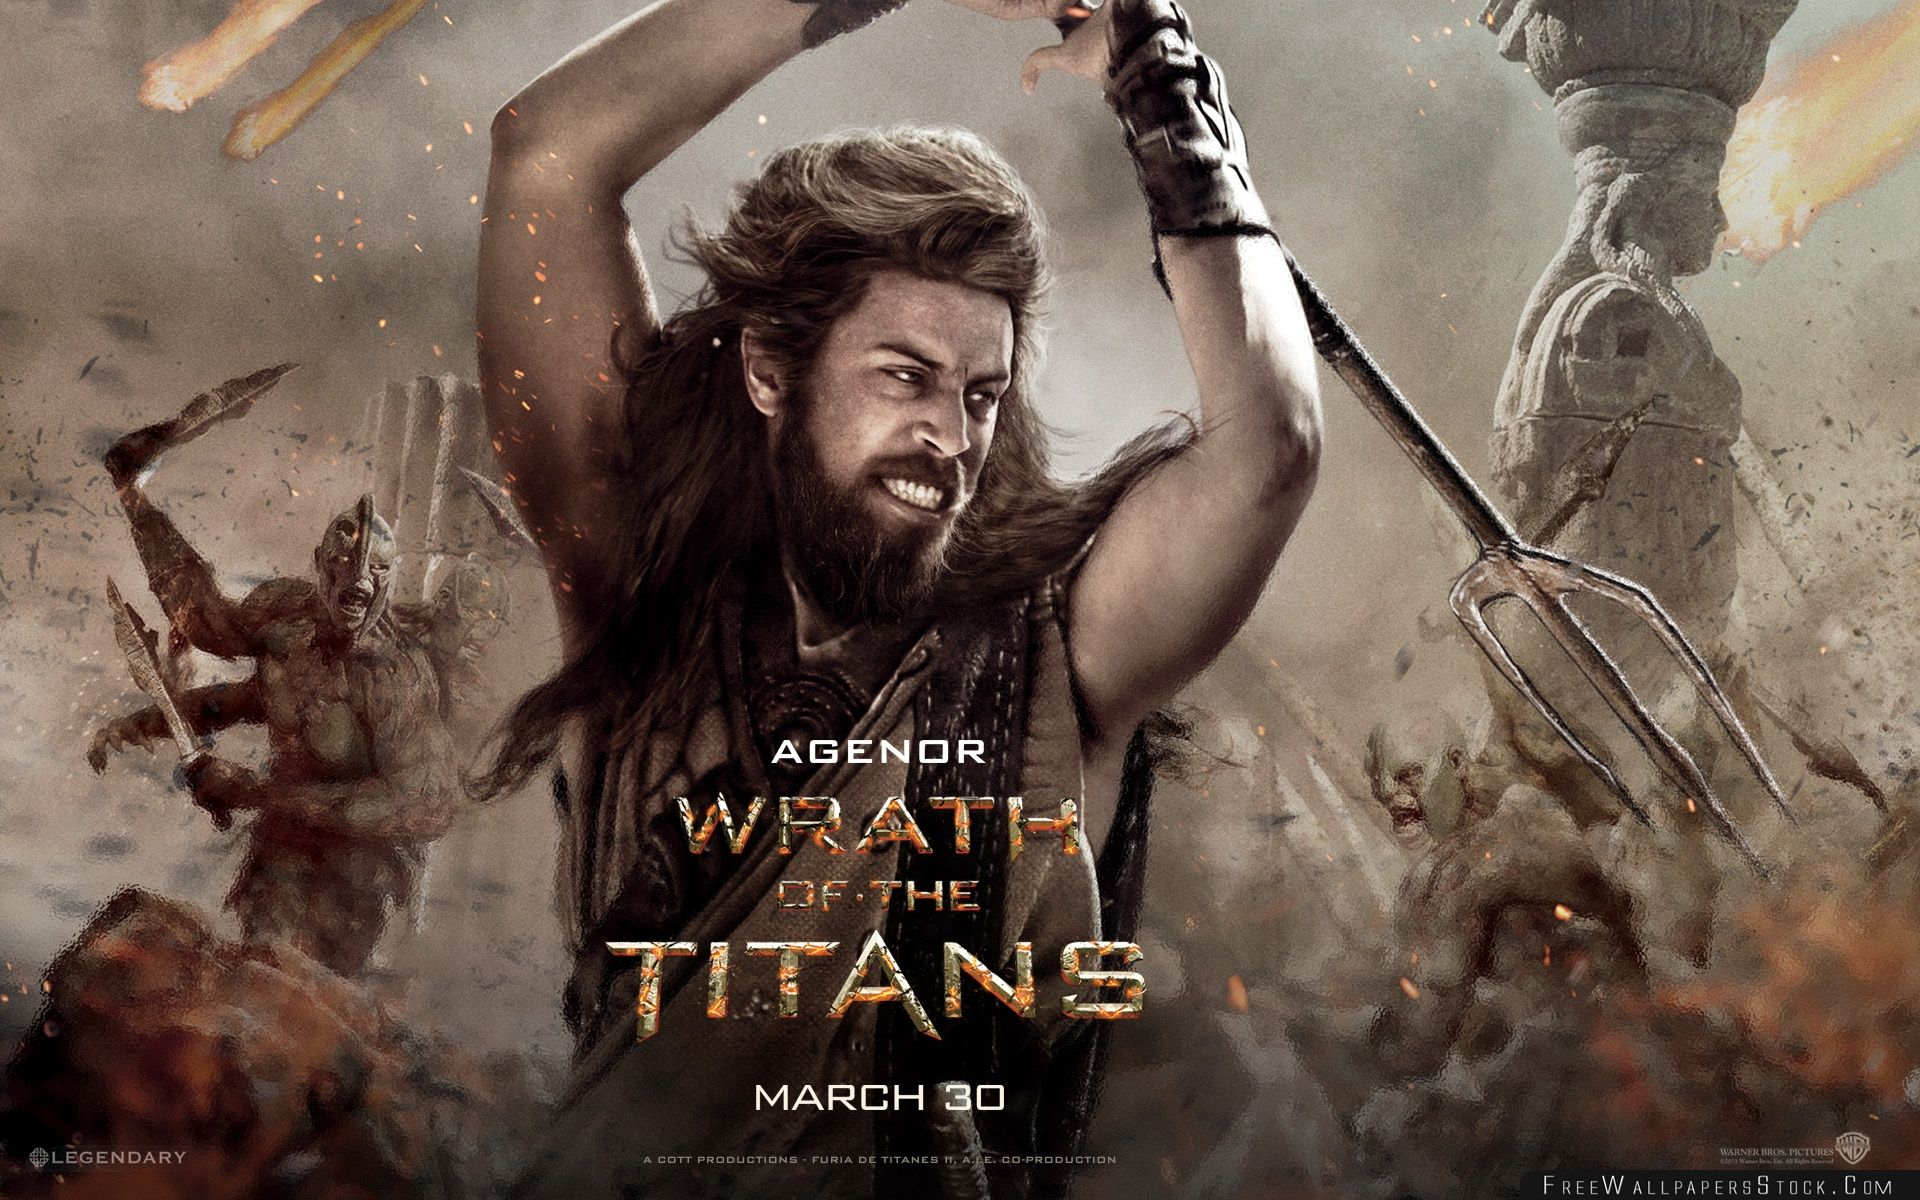 Download Free Wallpaper Wrath   The Titans Agenor